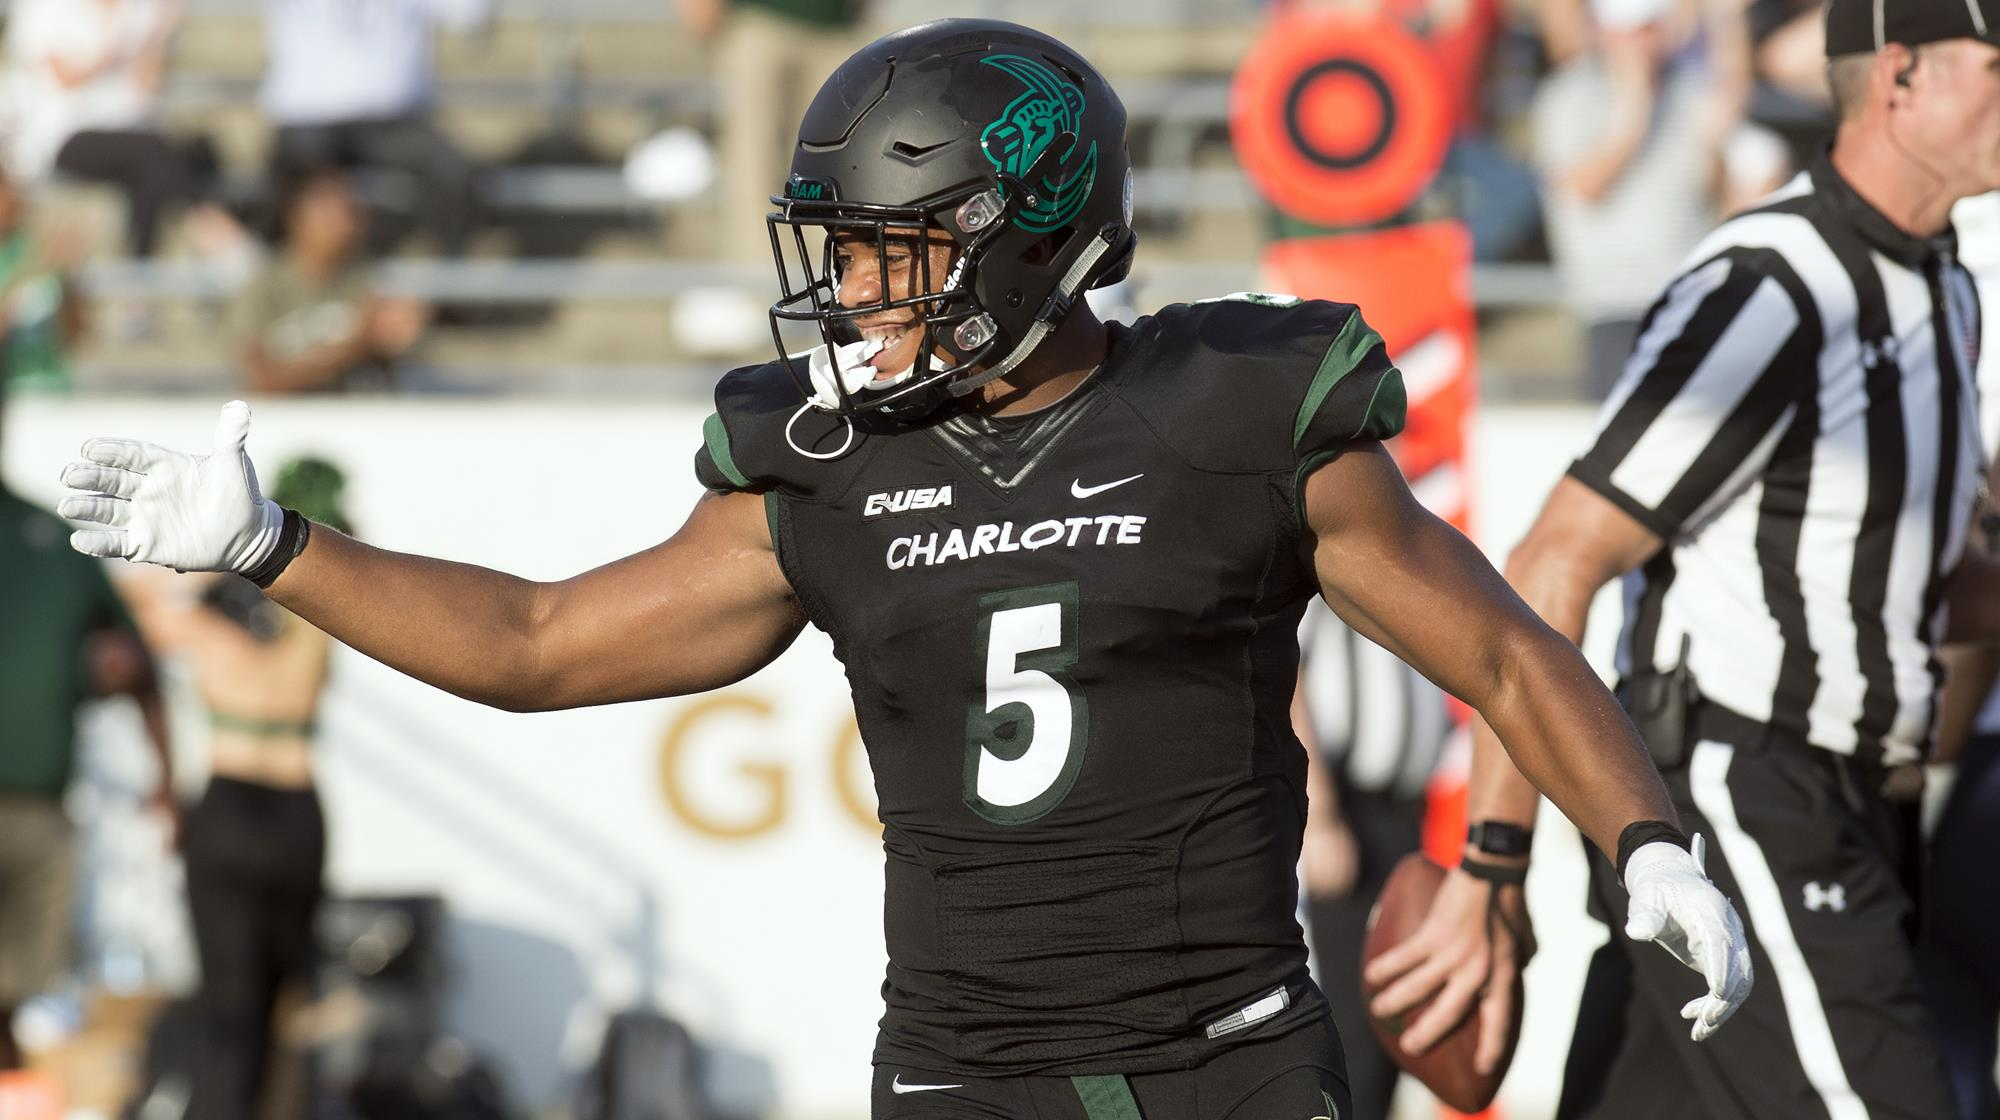 huge selection of 2db42 0ef1a GAME NOTES: Charlotte Hits Road for UMass - Charlotte Athletics